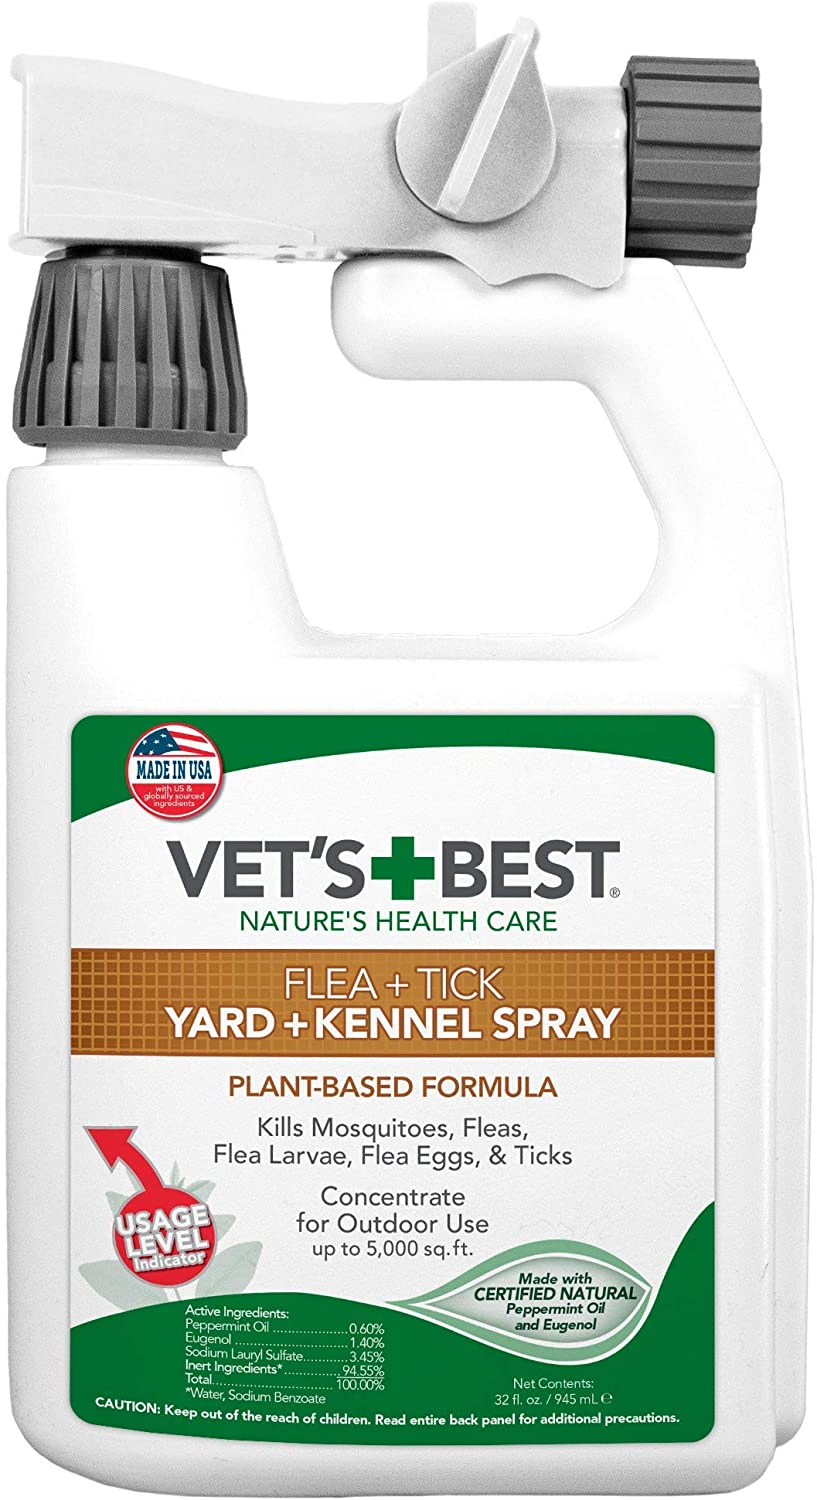 Best Flea Treatment for Yard 2020 - Consumer Reports